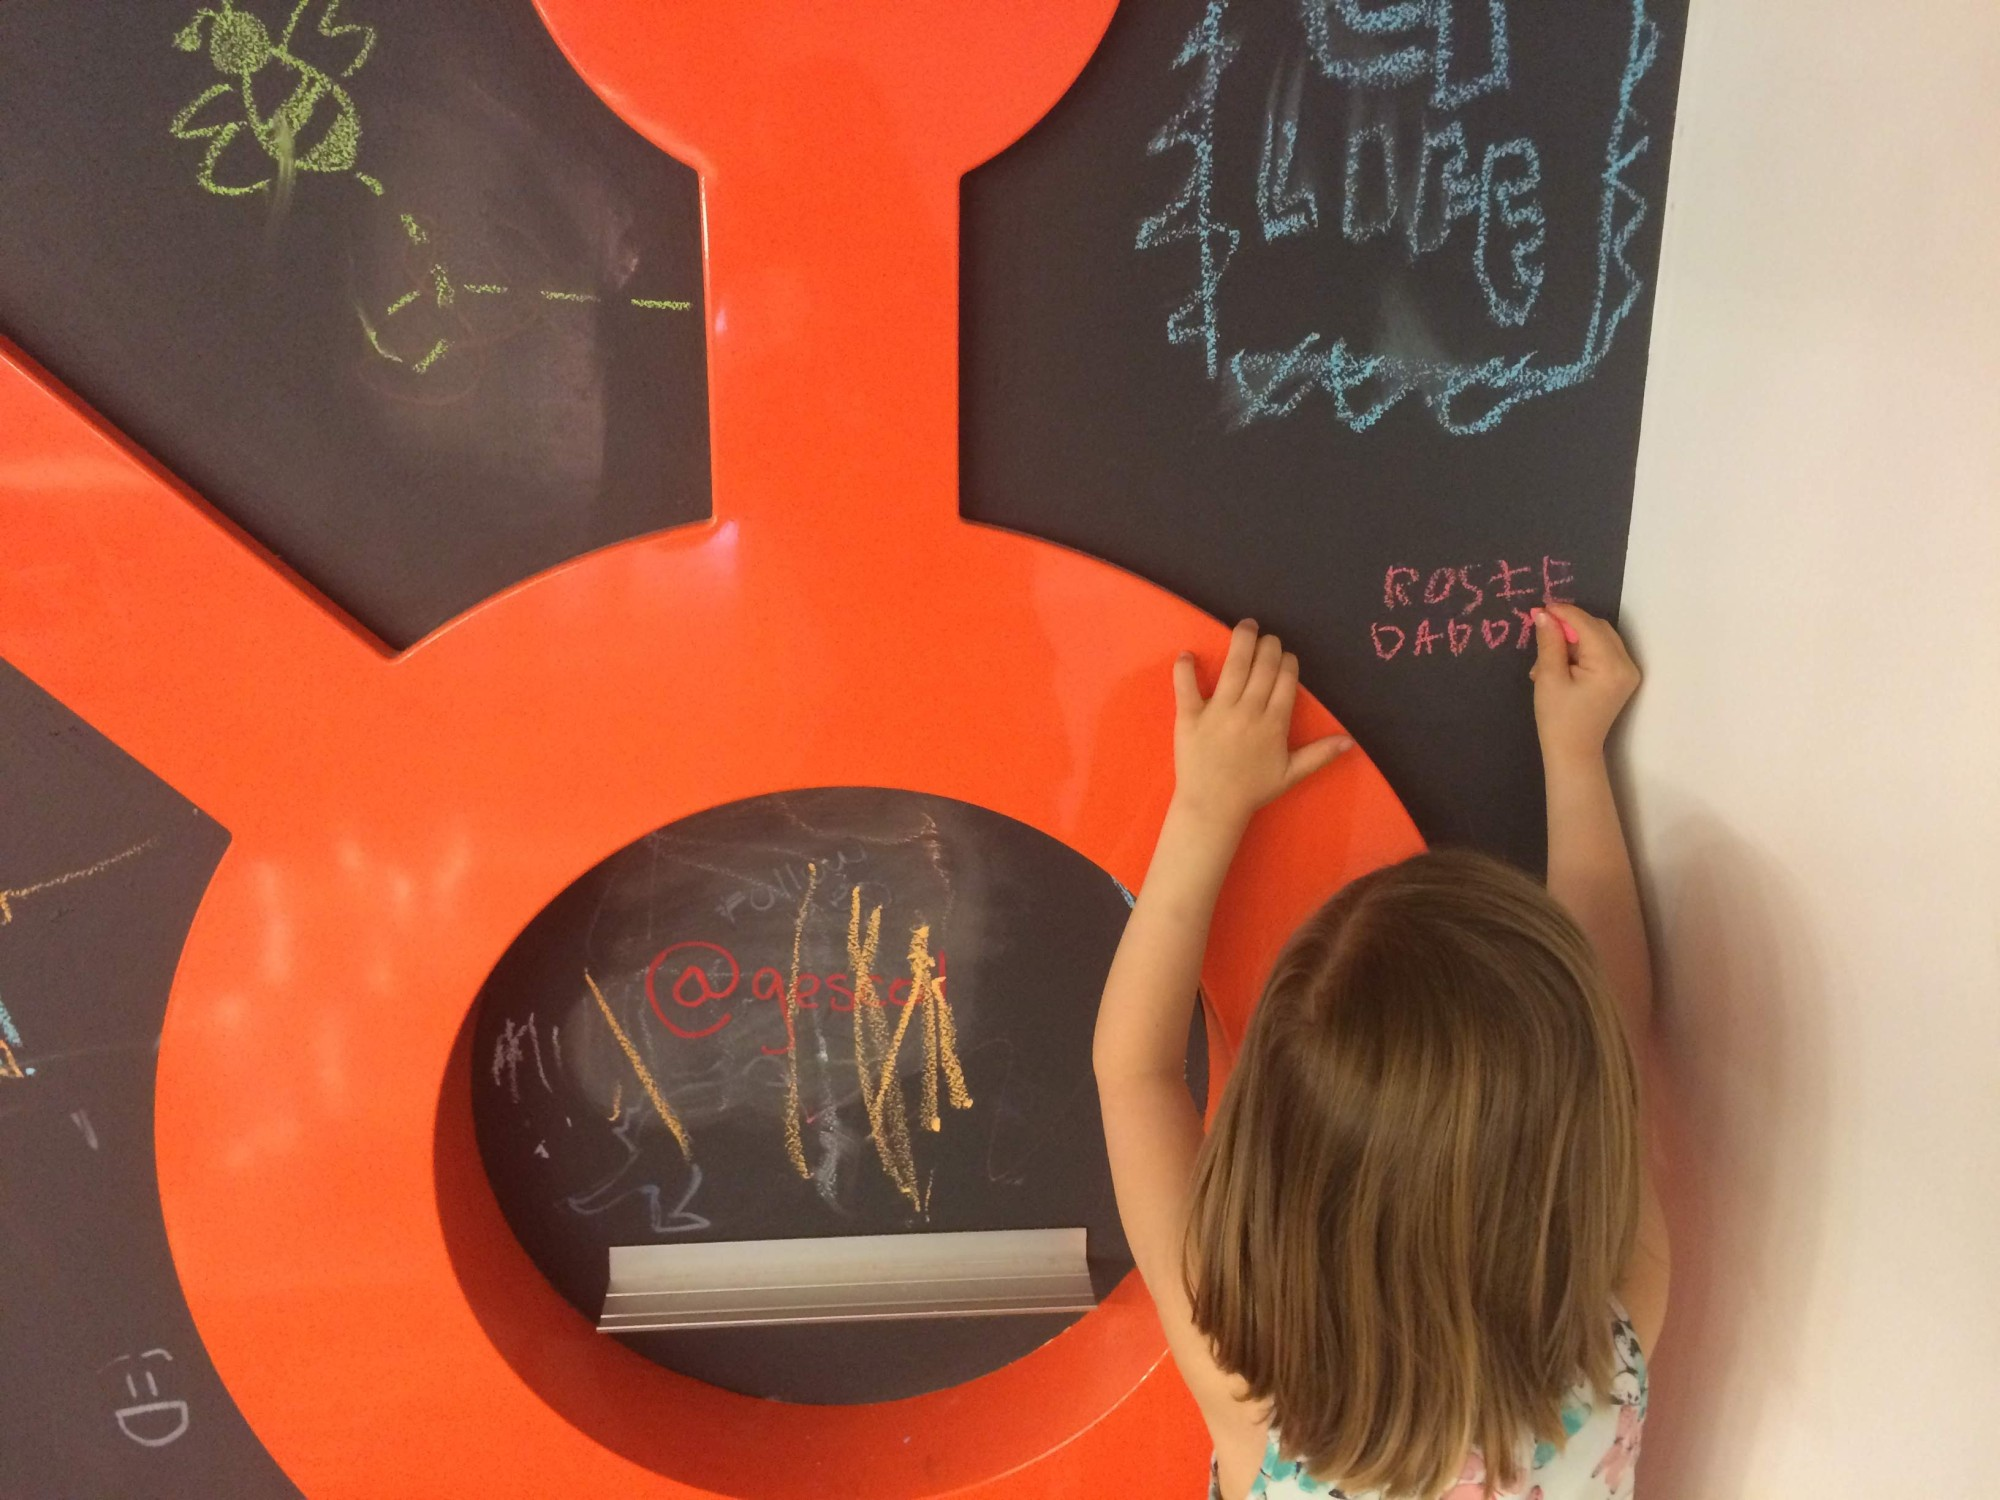 Chalkboard at the HubSpot office with Rosie and Daddy written on it by Rosie Yellis